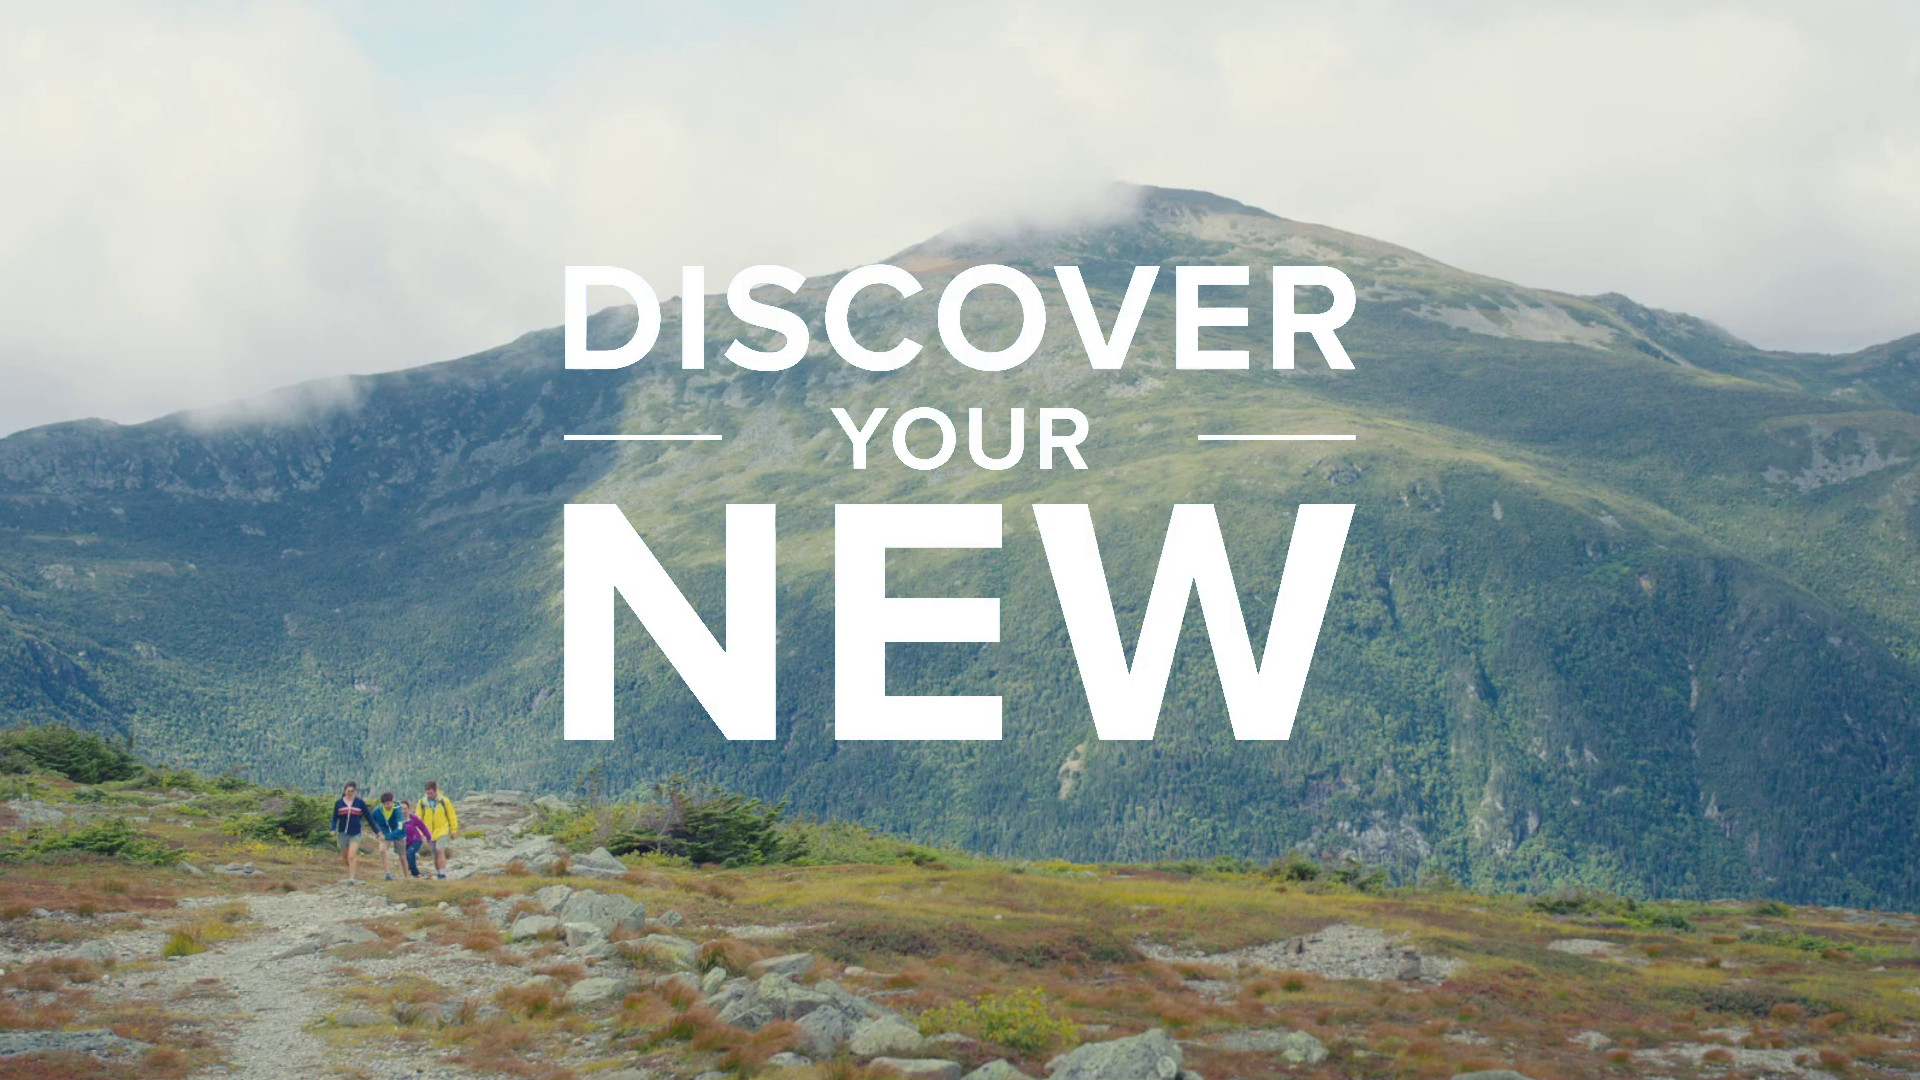 Discover Your New, Summer Travel Campaign of New Hampshire